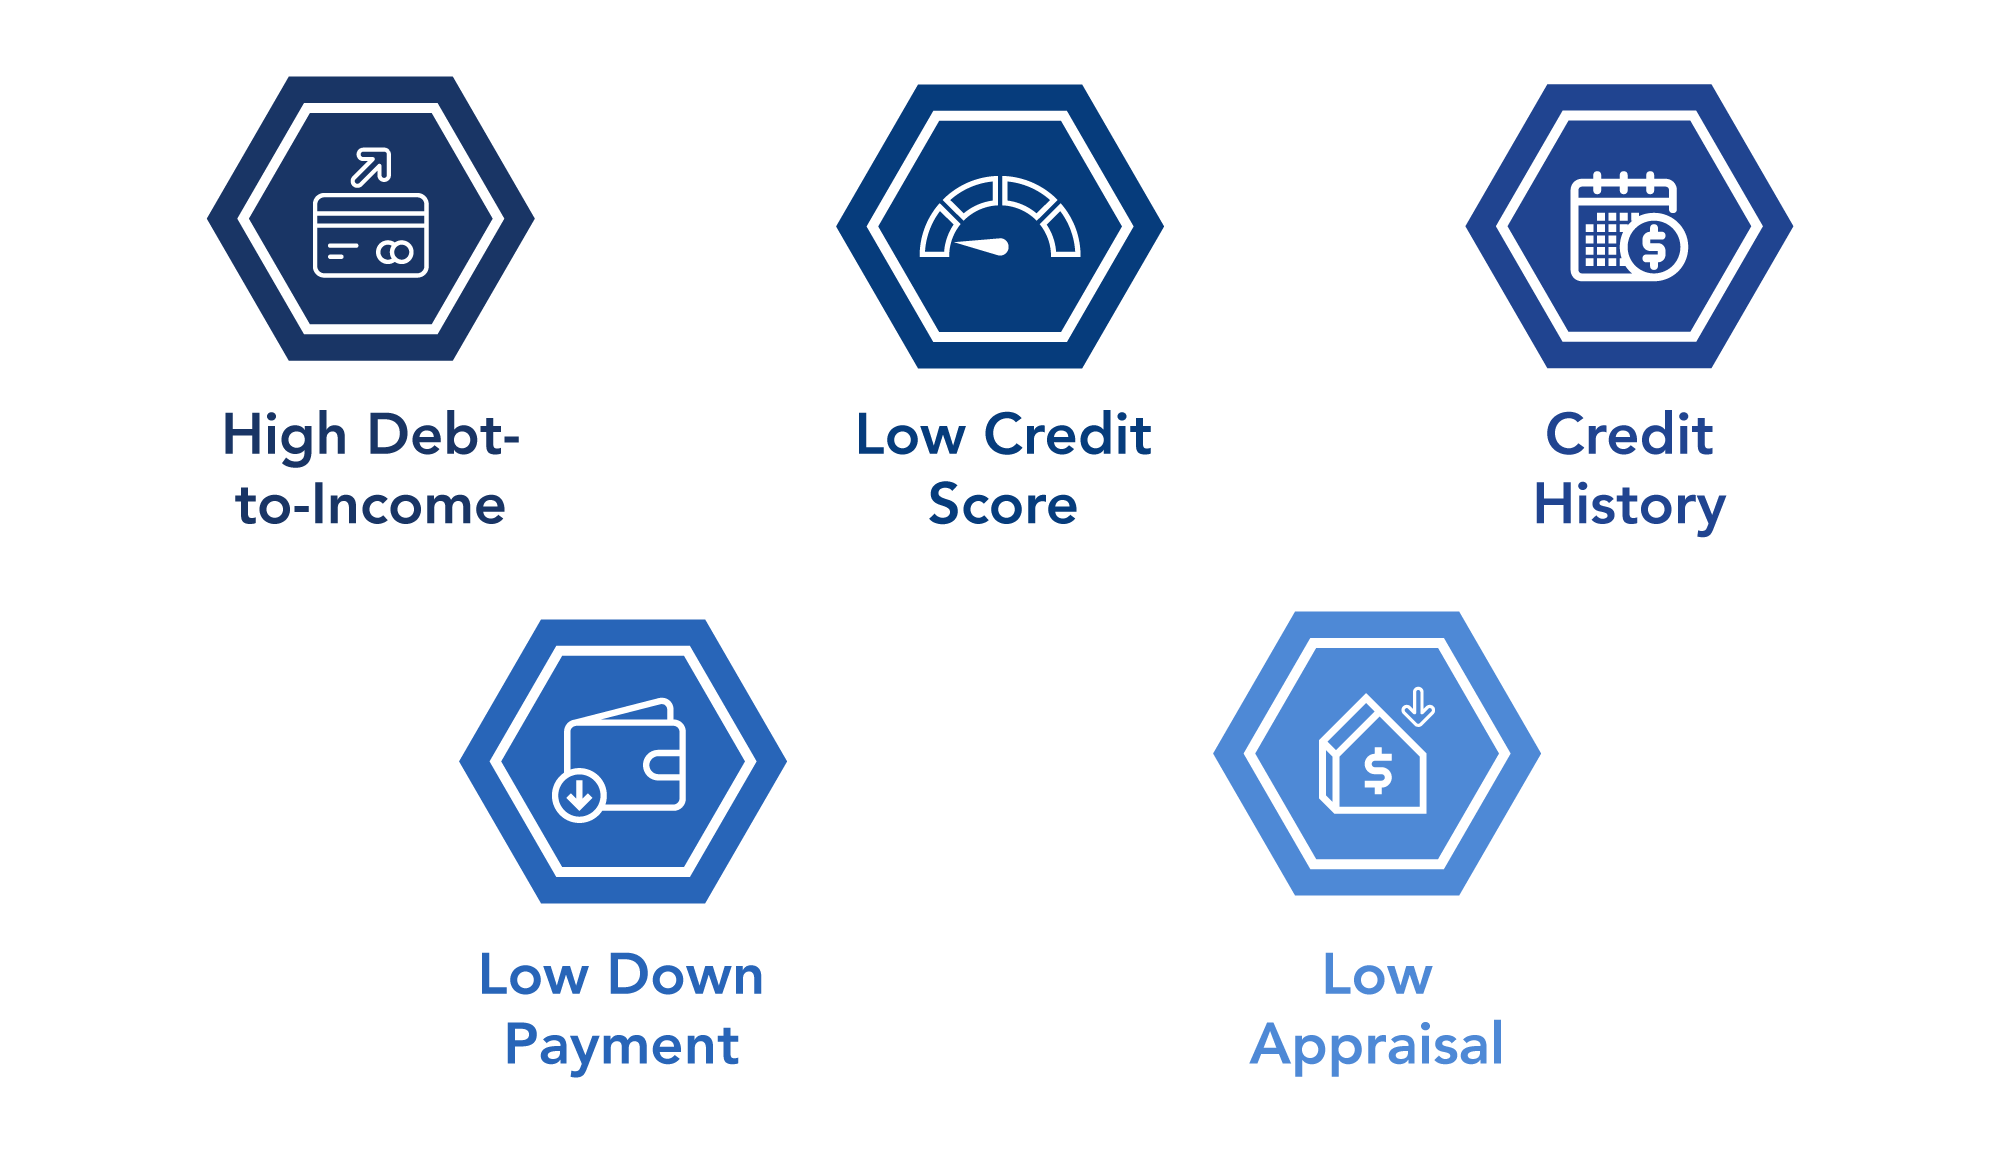 Discover how FinLocker can help you turn around your turn downed applicants, so they'll return to you with a stronger mortgage application.